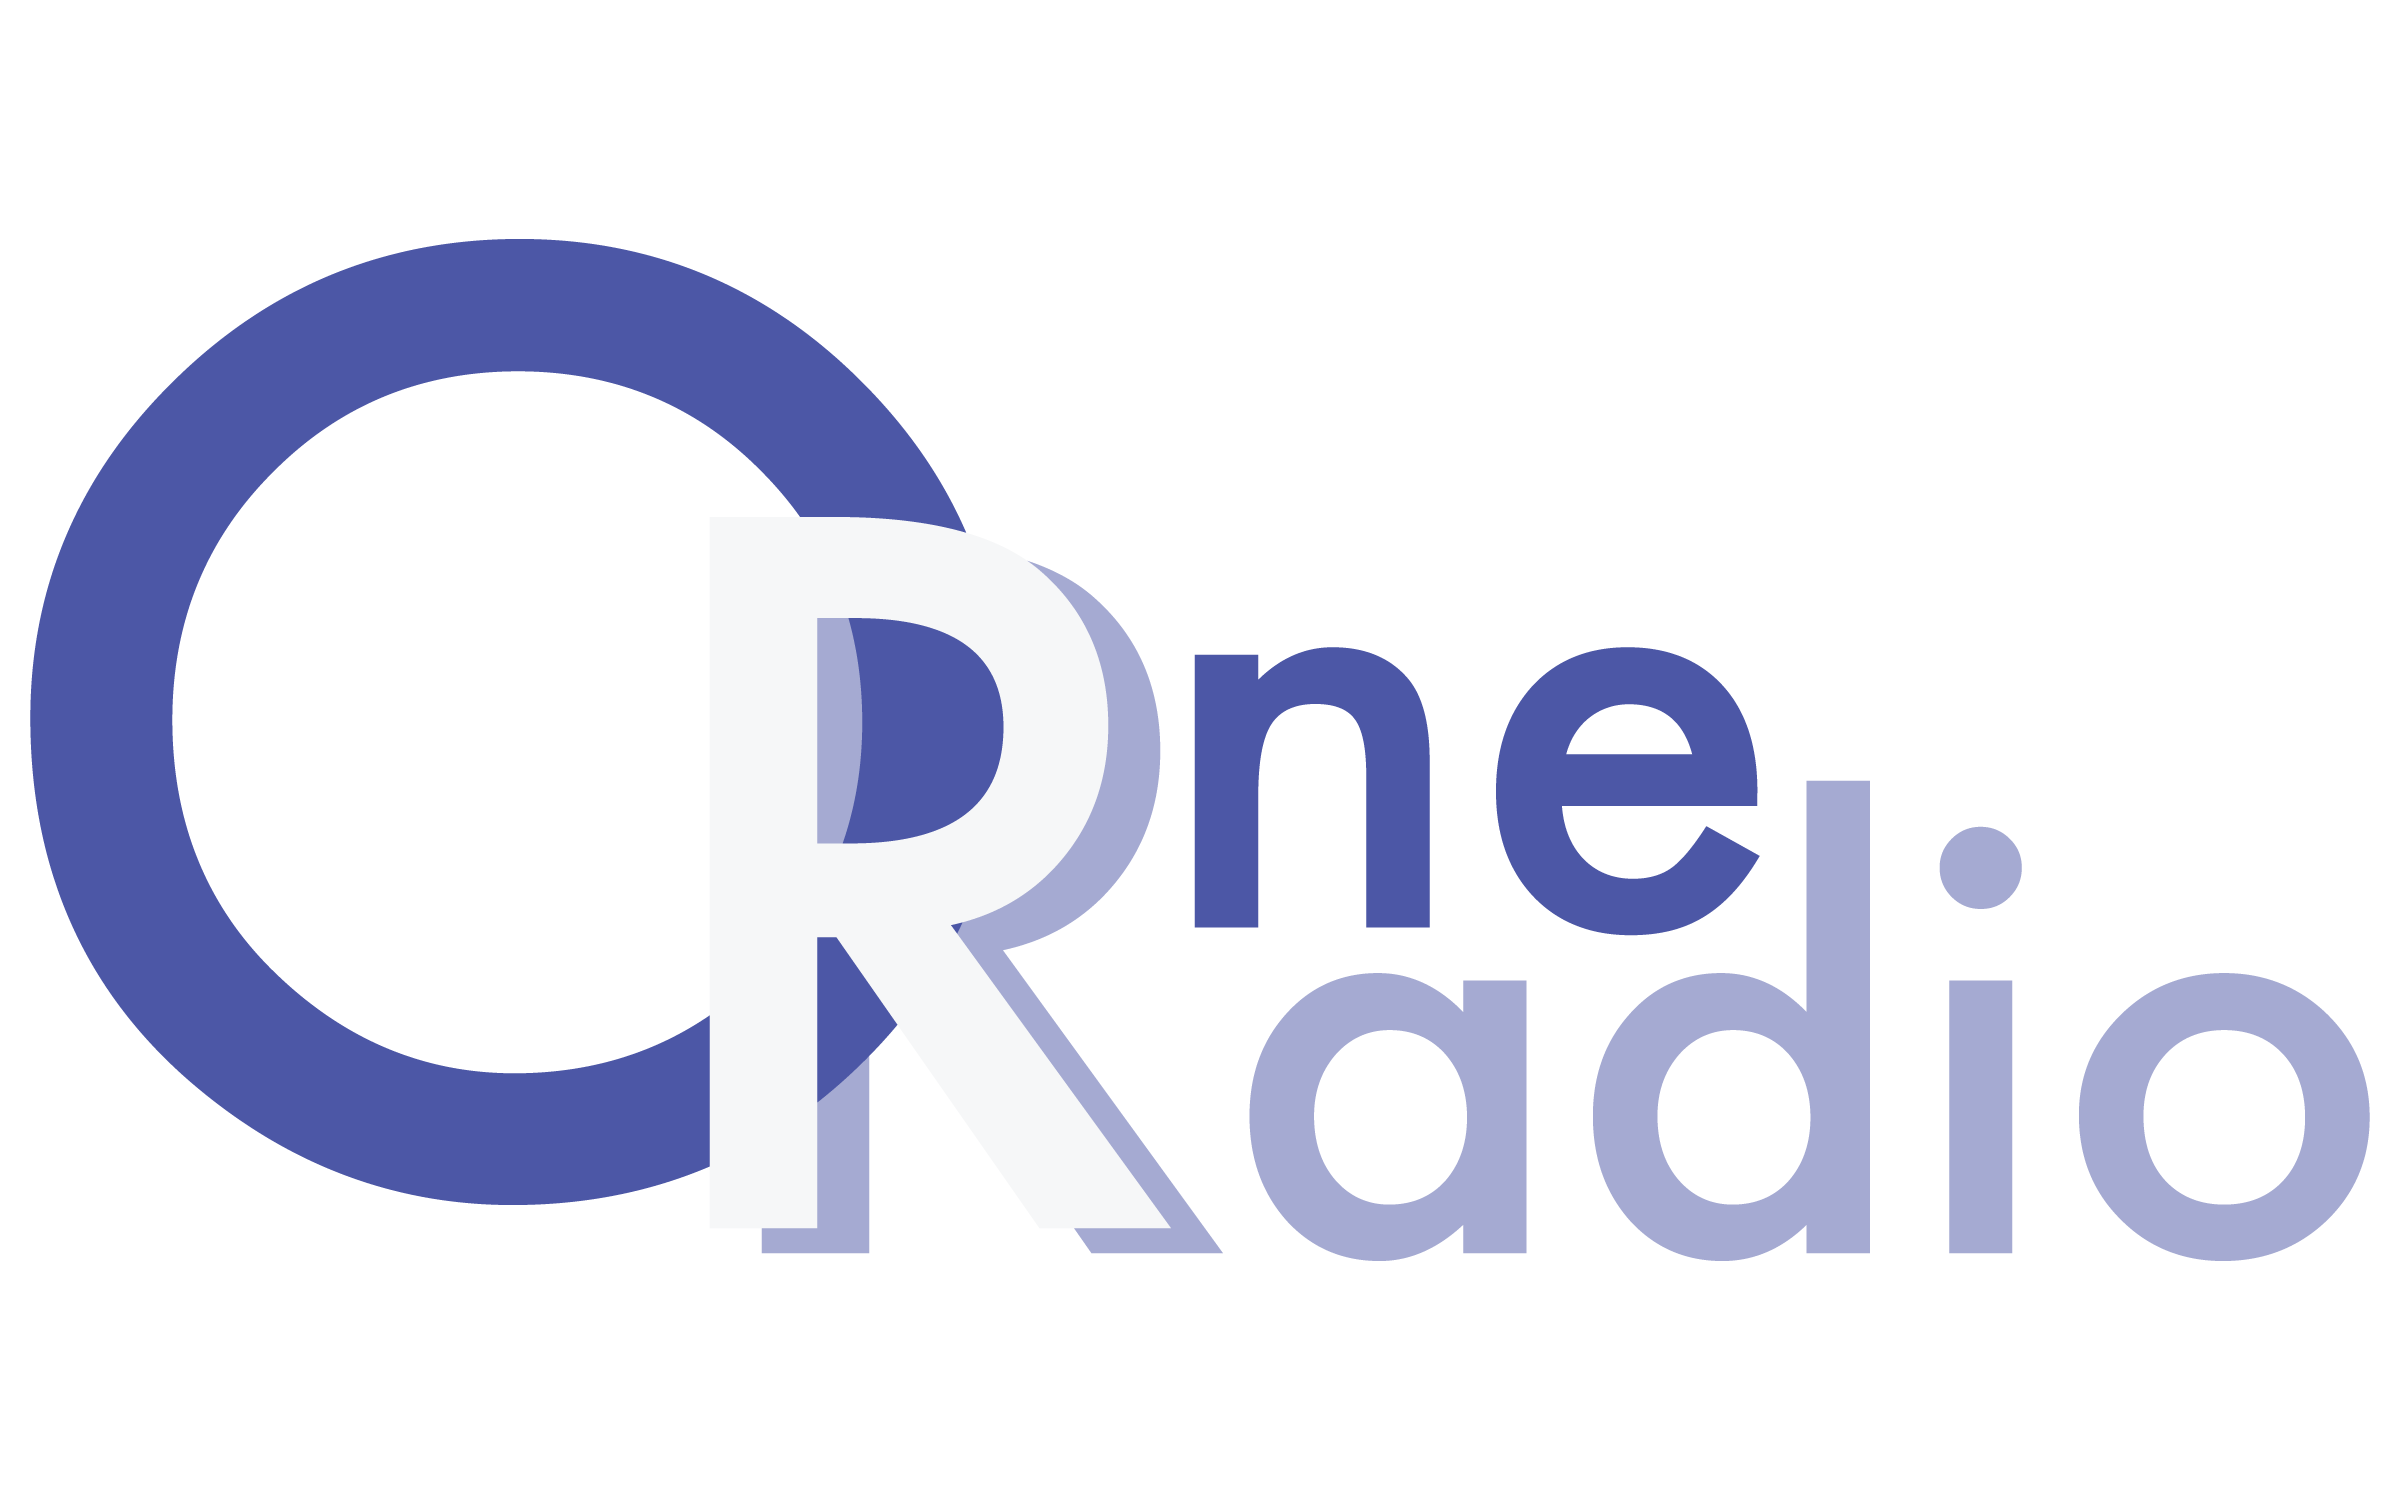 OneRadio Corporation